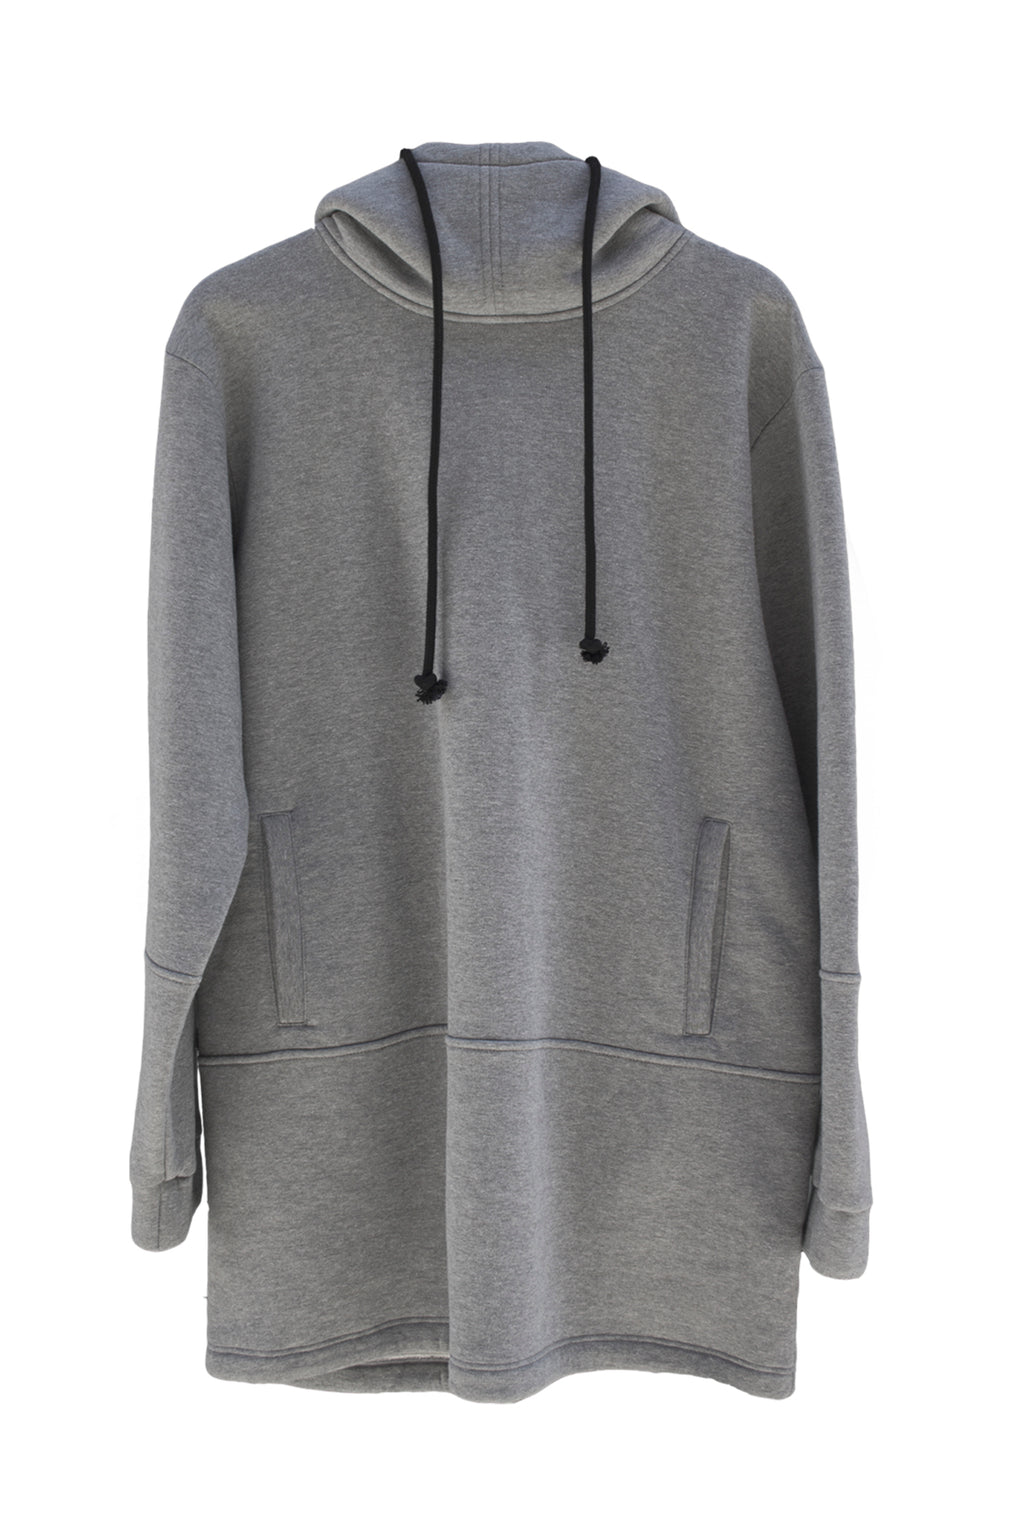 One Wolf Hoodie No.7 grey - One Wolf